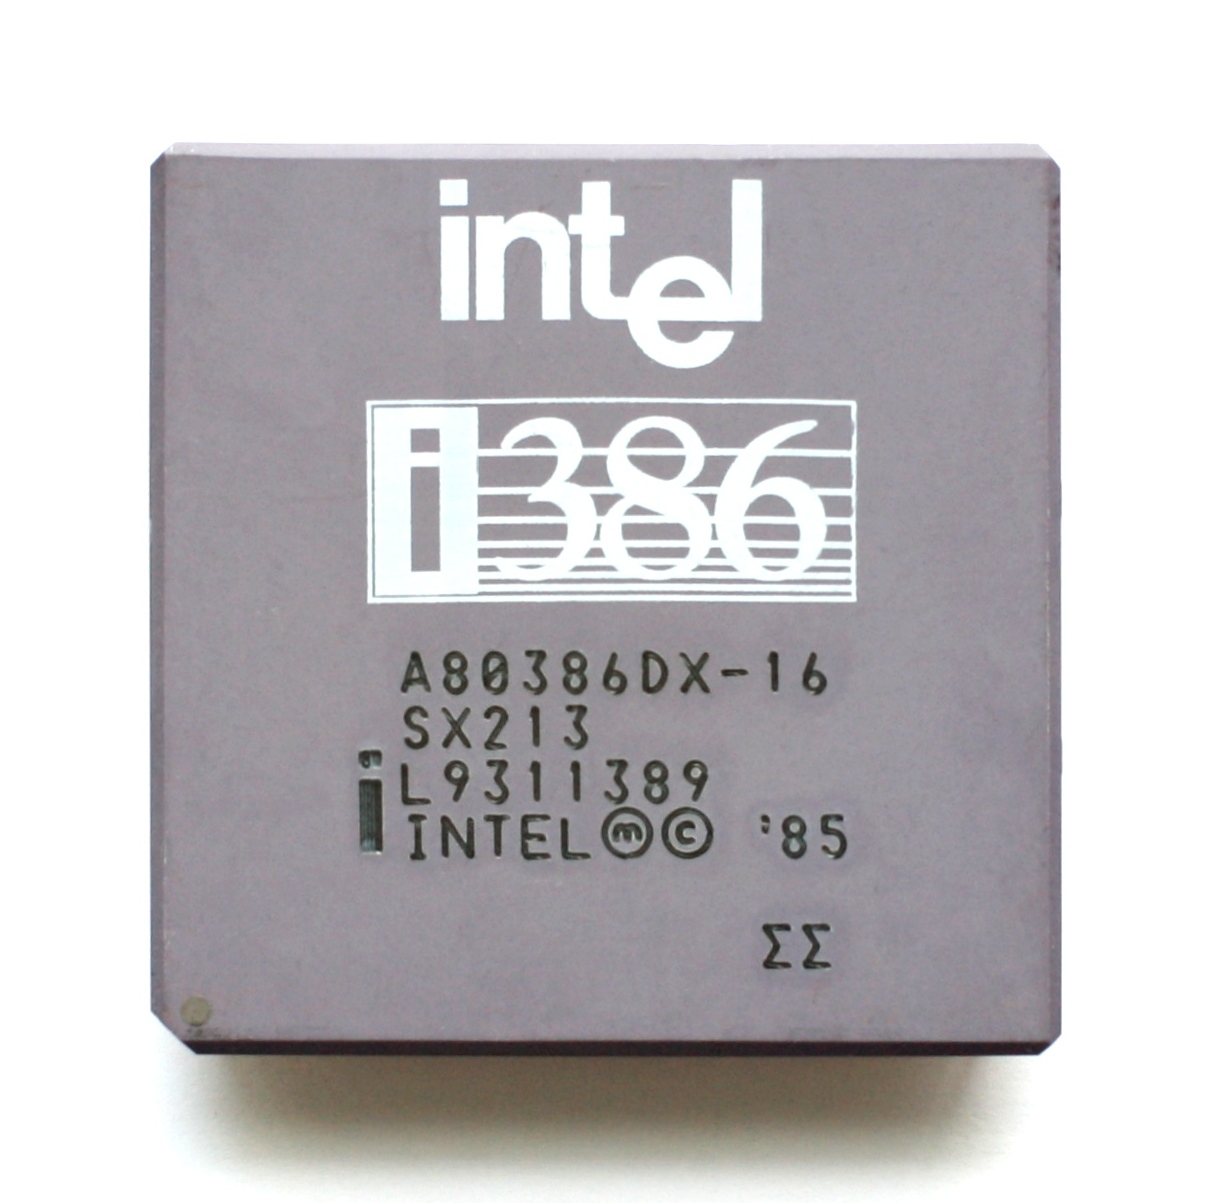 The intel 386 processor. The perfect core to run a game of classic dos Wolf3D.